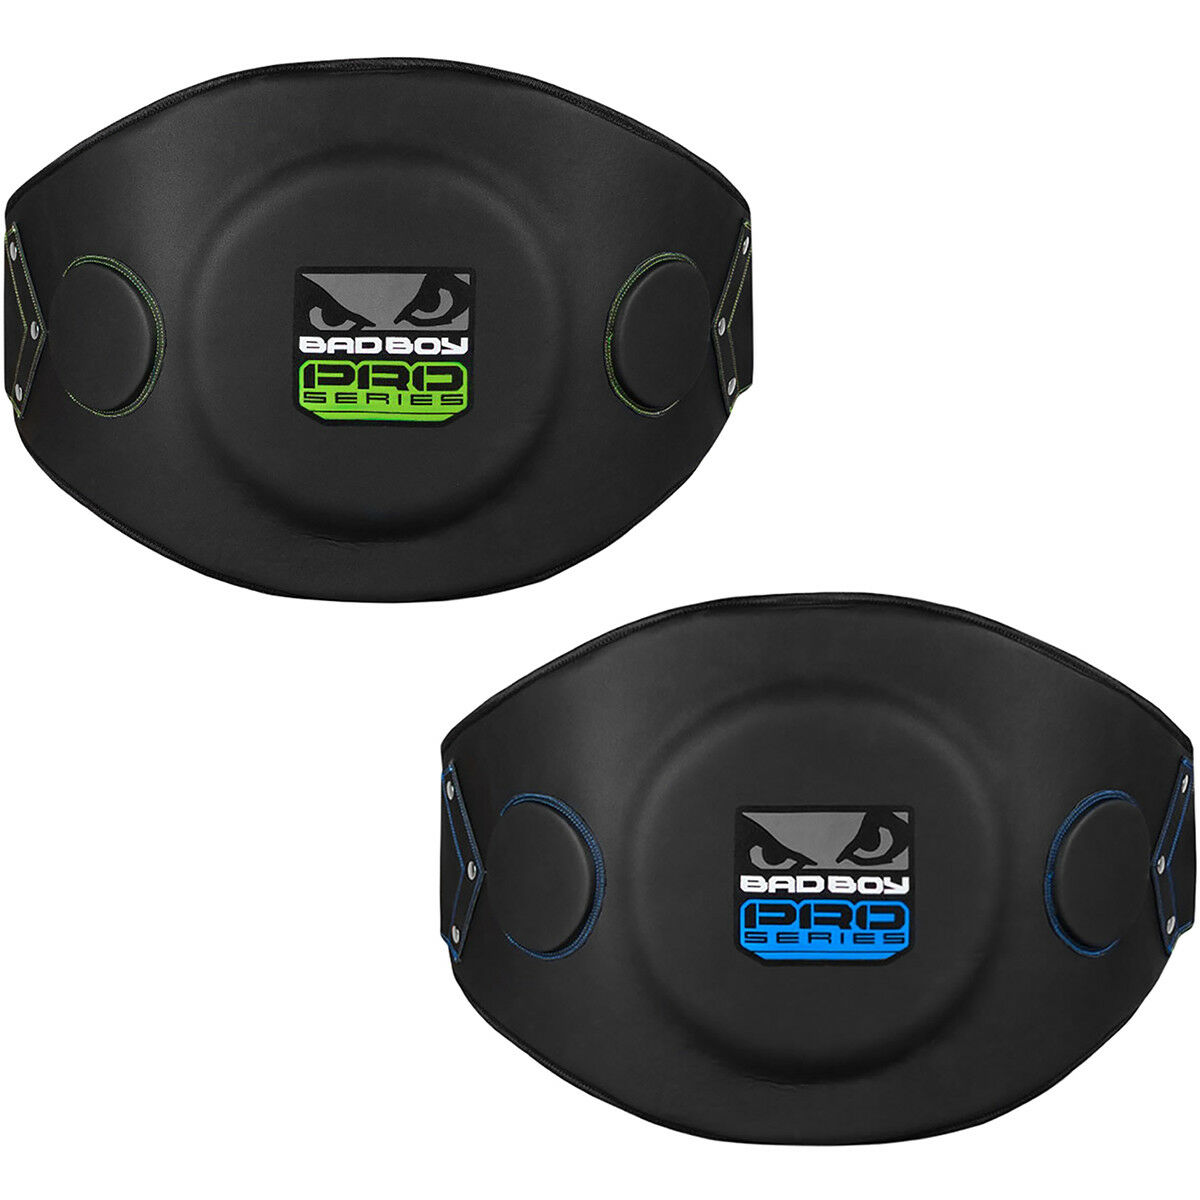 Bad Boy Pro Series 2.0 Predective MMA Training Belly Pad